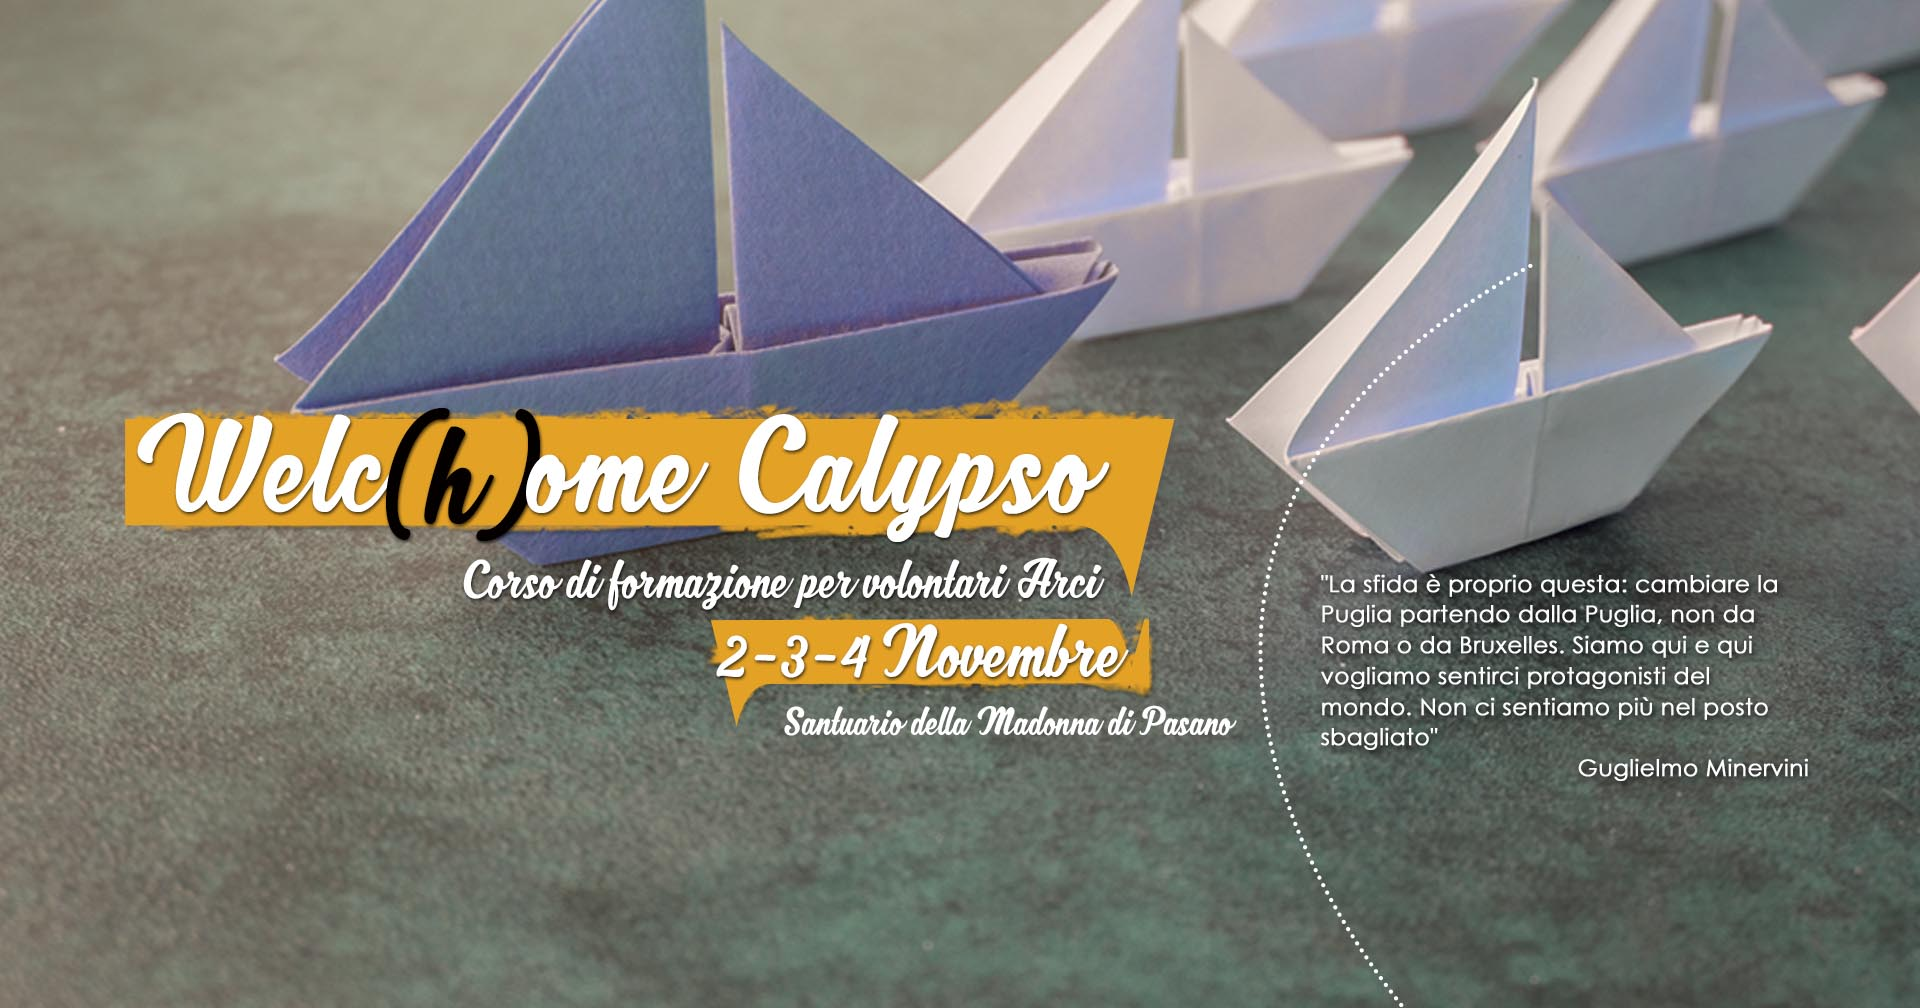 WelcHome Calypso – sito web – slide